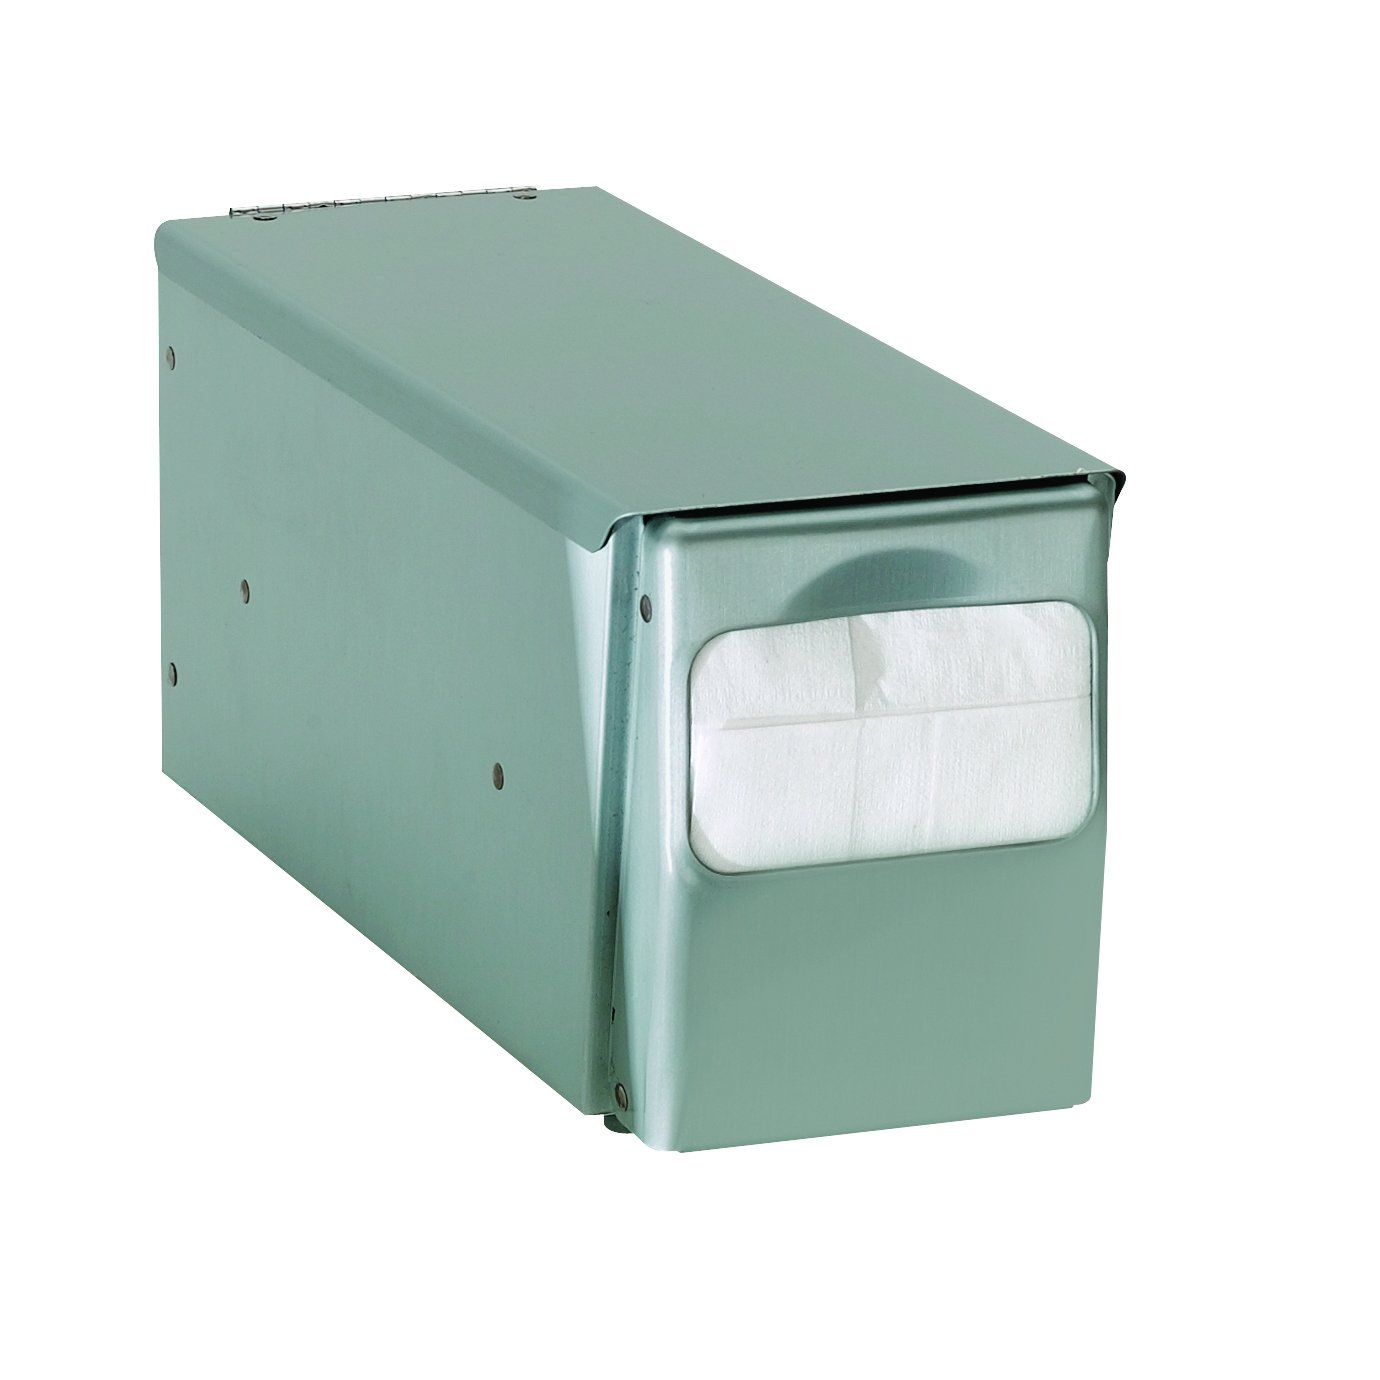 Dispense Rite Countertop Full Fold Napkin Dispenser, 5 5/8 x 7 5/8 x 11 3/4 inch - 6 per case.